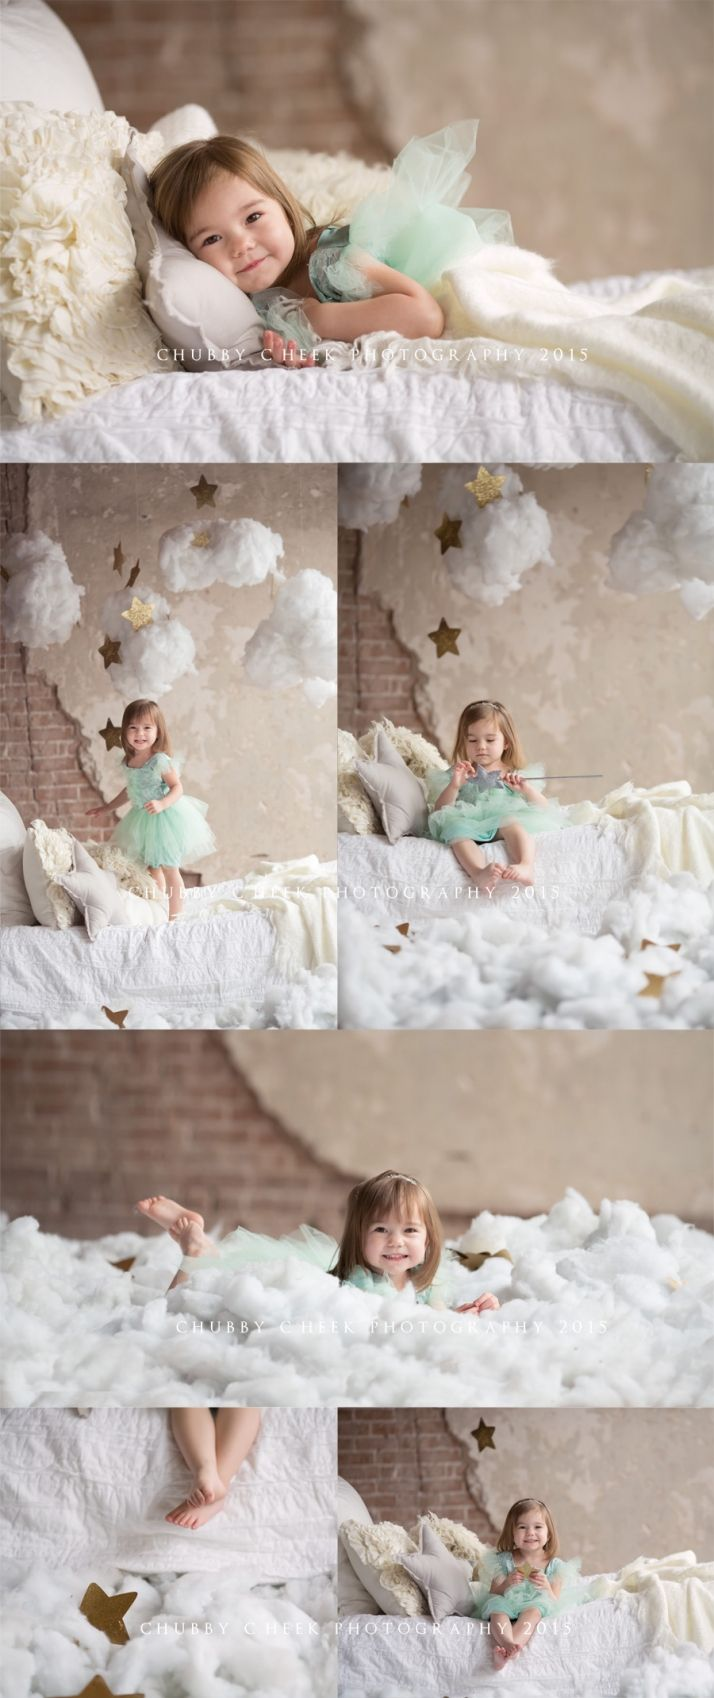 chubby cheek photography mini sessions houston texas